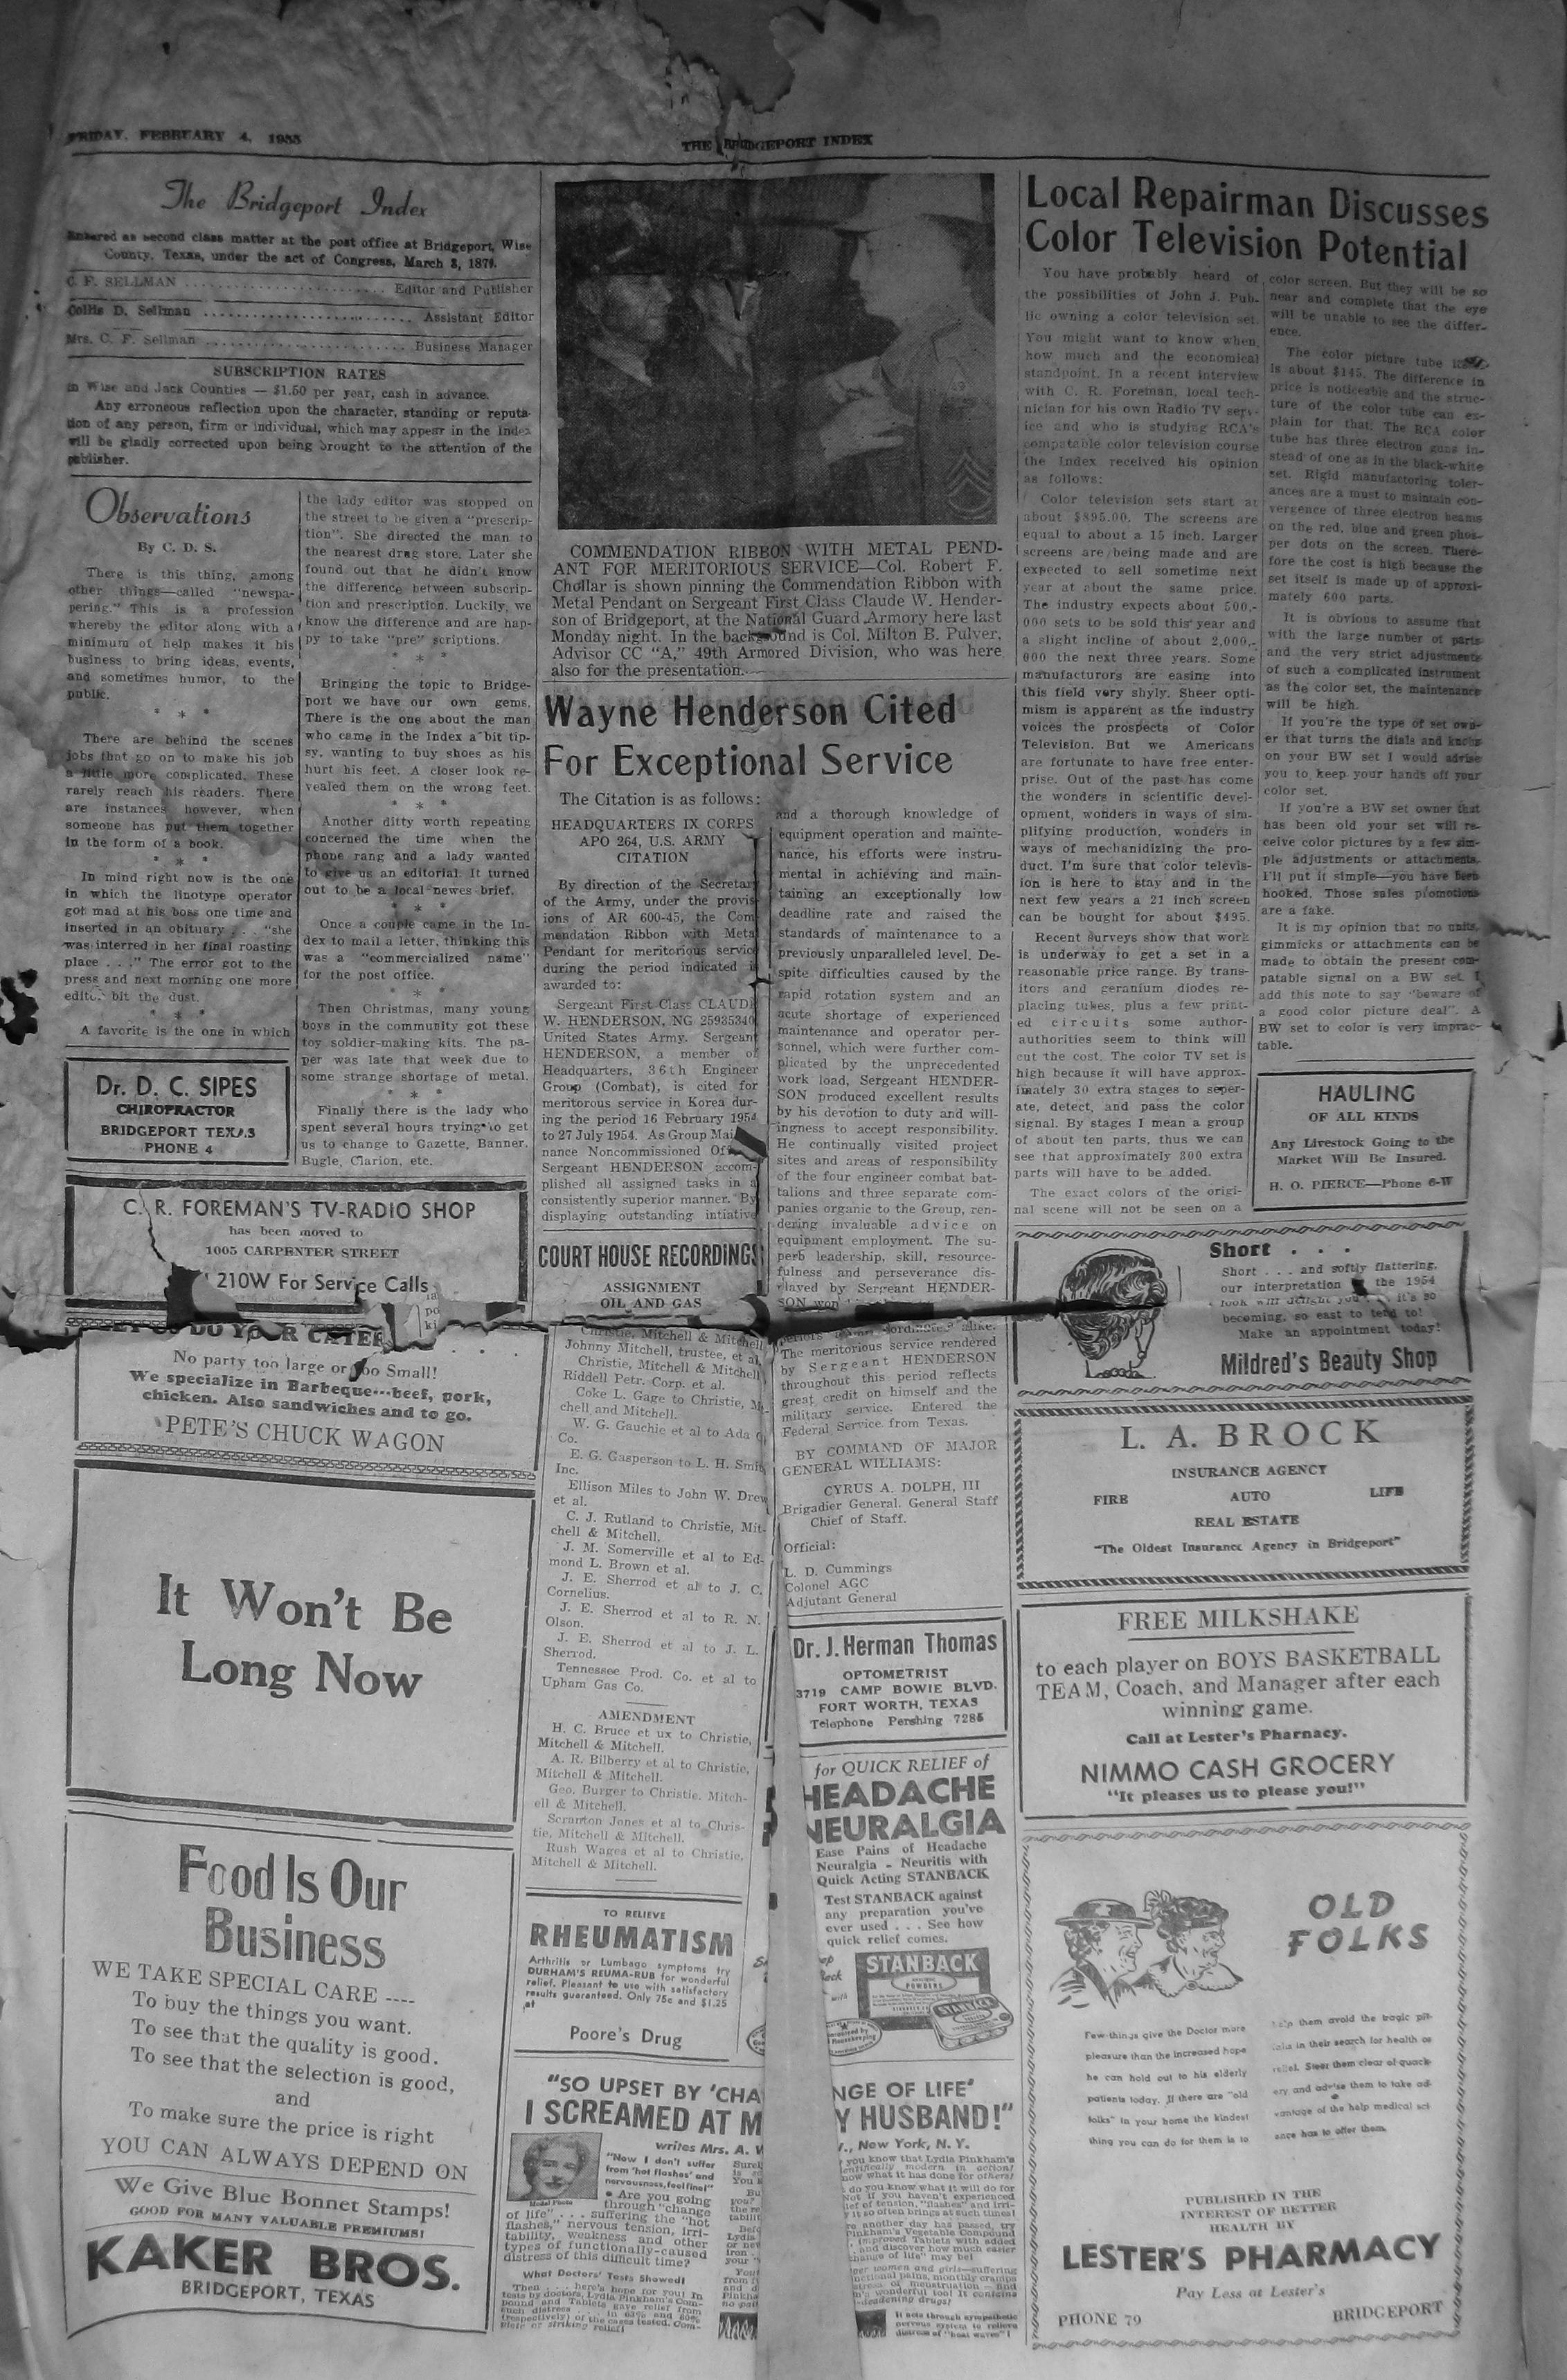 Ford Odessa Tx >> Index of Names (A-G) from the 1955 Bridgeport Index Newspaper